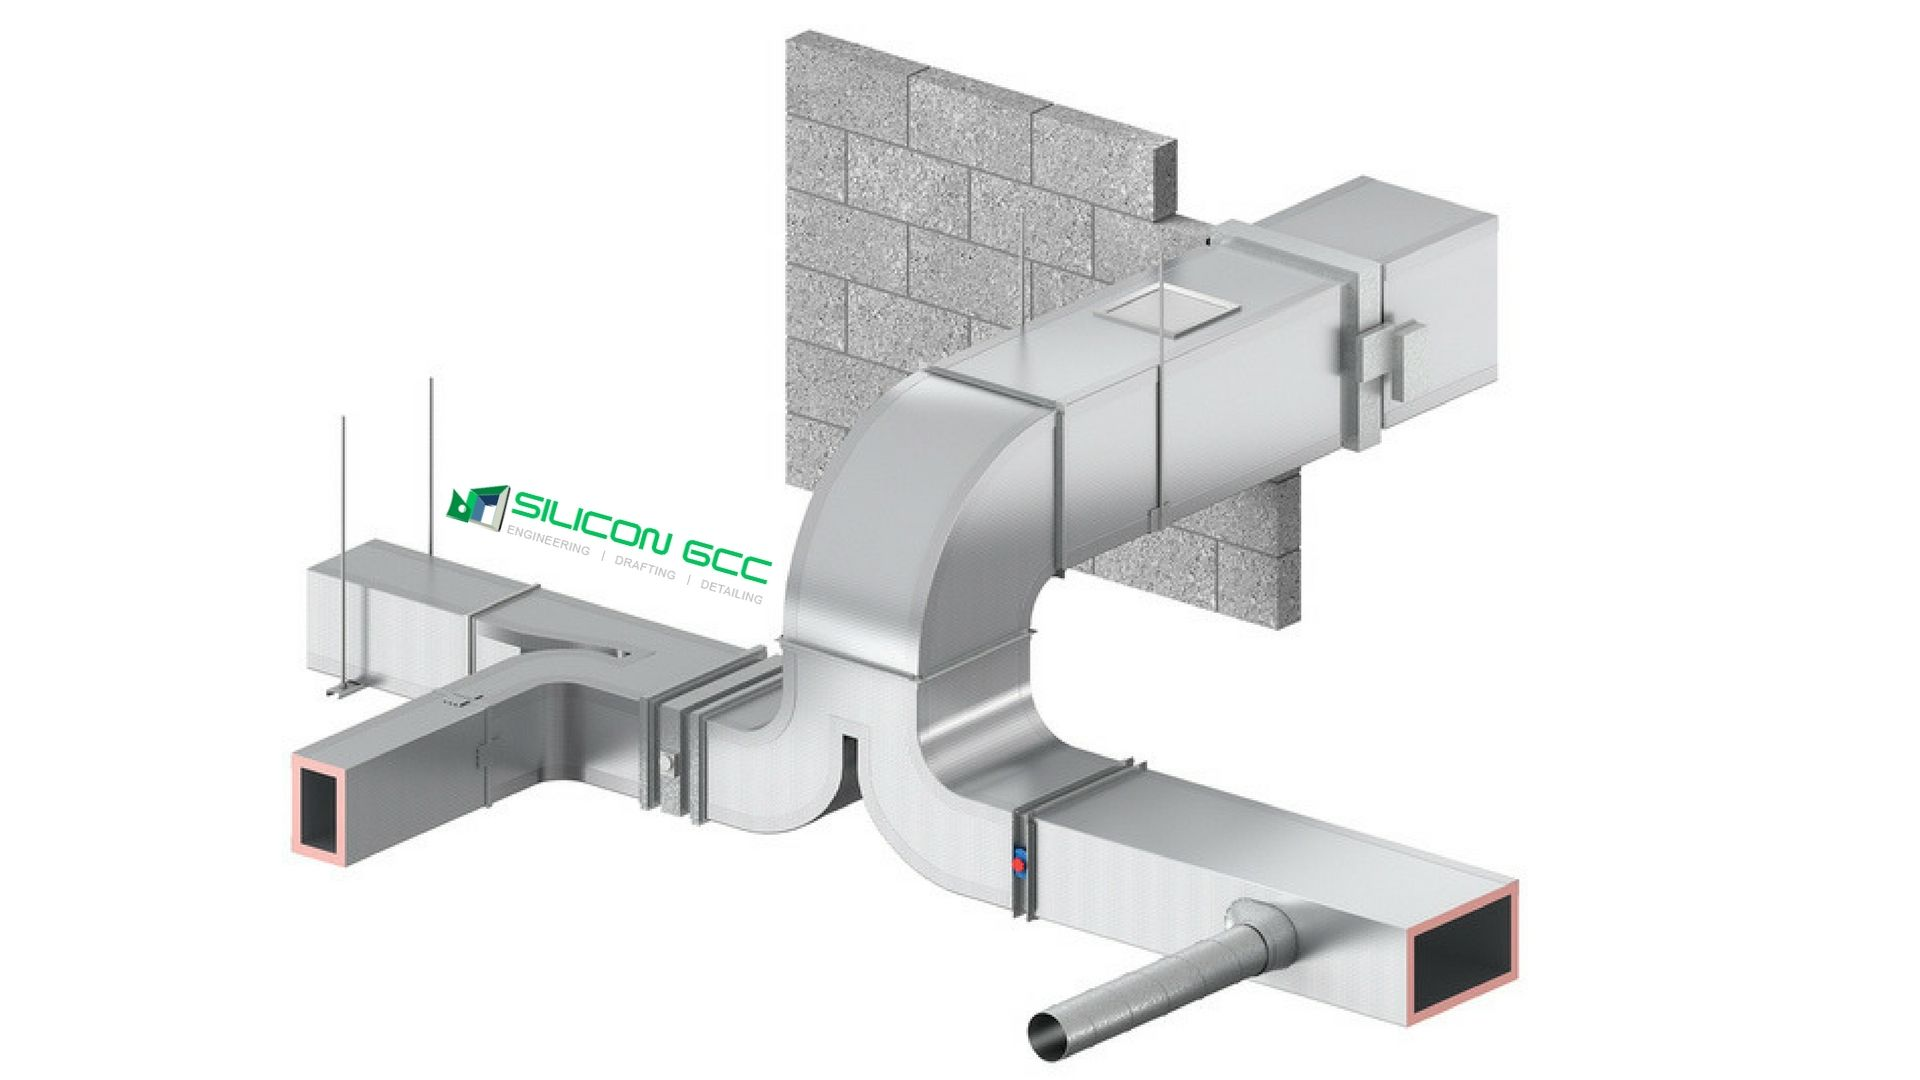 hvac duct components incorporate programmed drawing of extensive rectangular and circular duct fittings fire dampers flex ducts control dampers and  [ 1920 x 1080 Pixel ]